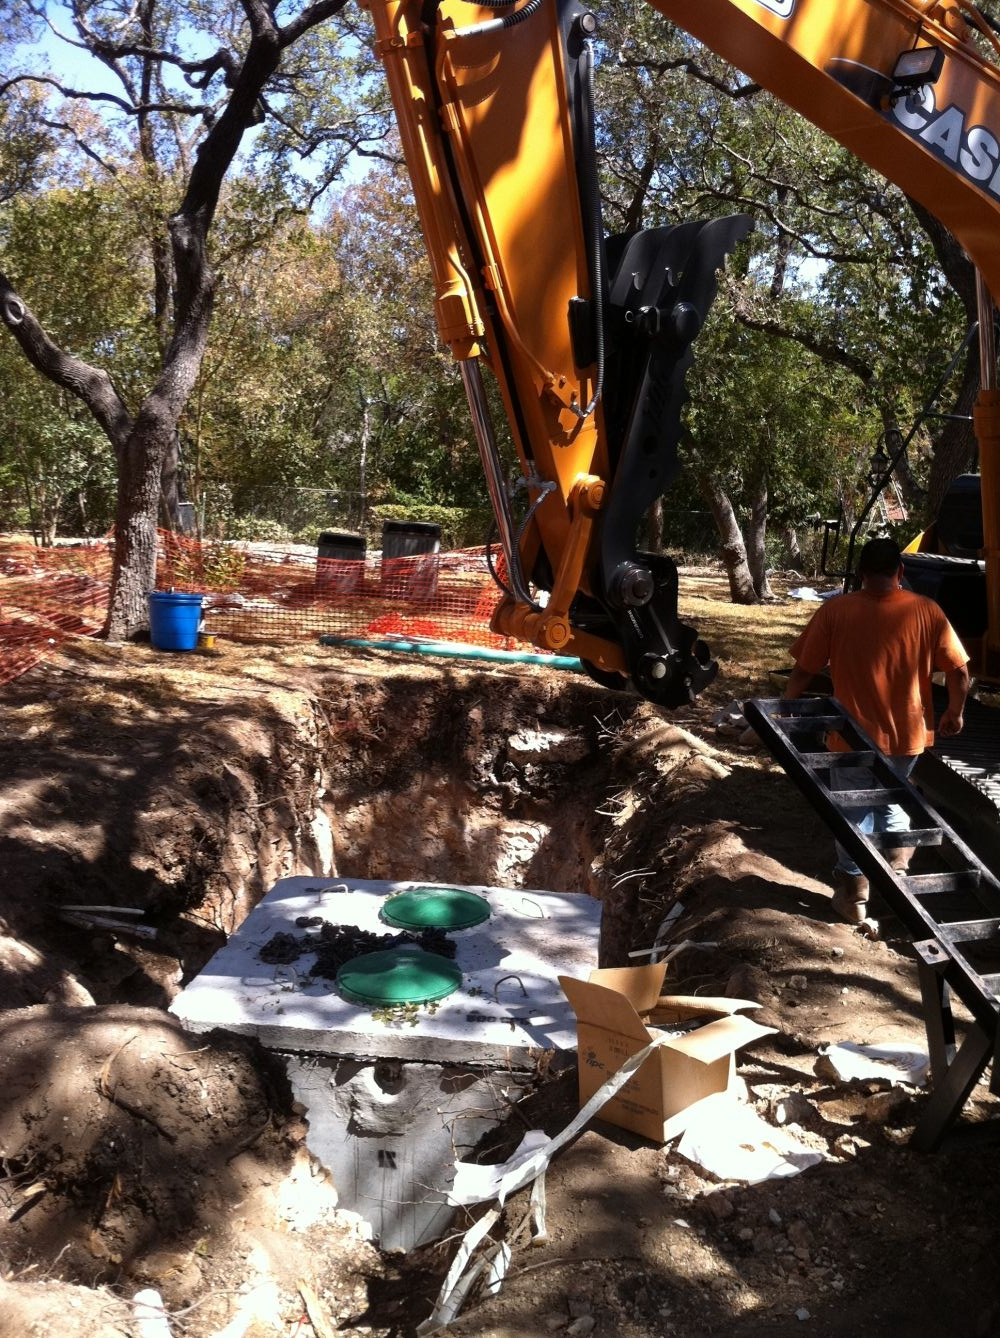 septic tank in New Braunfels, TX